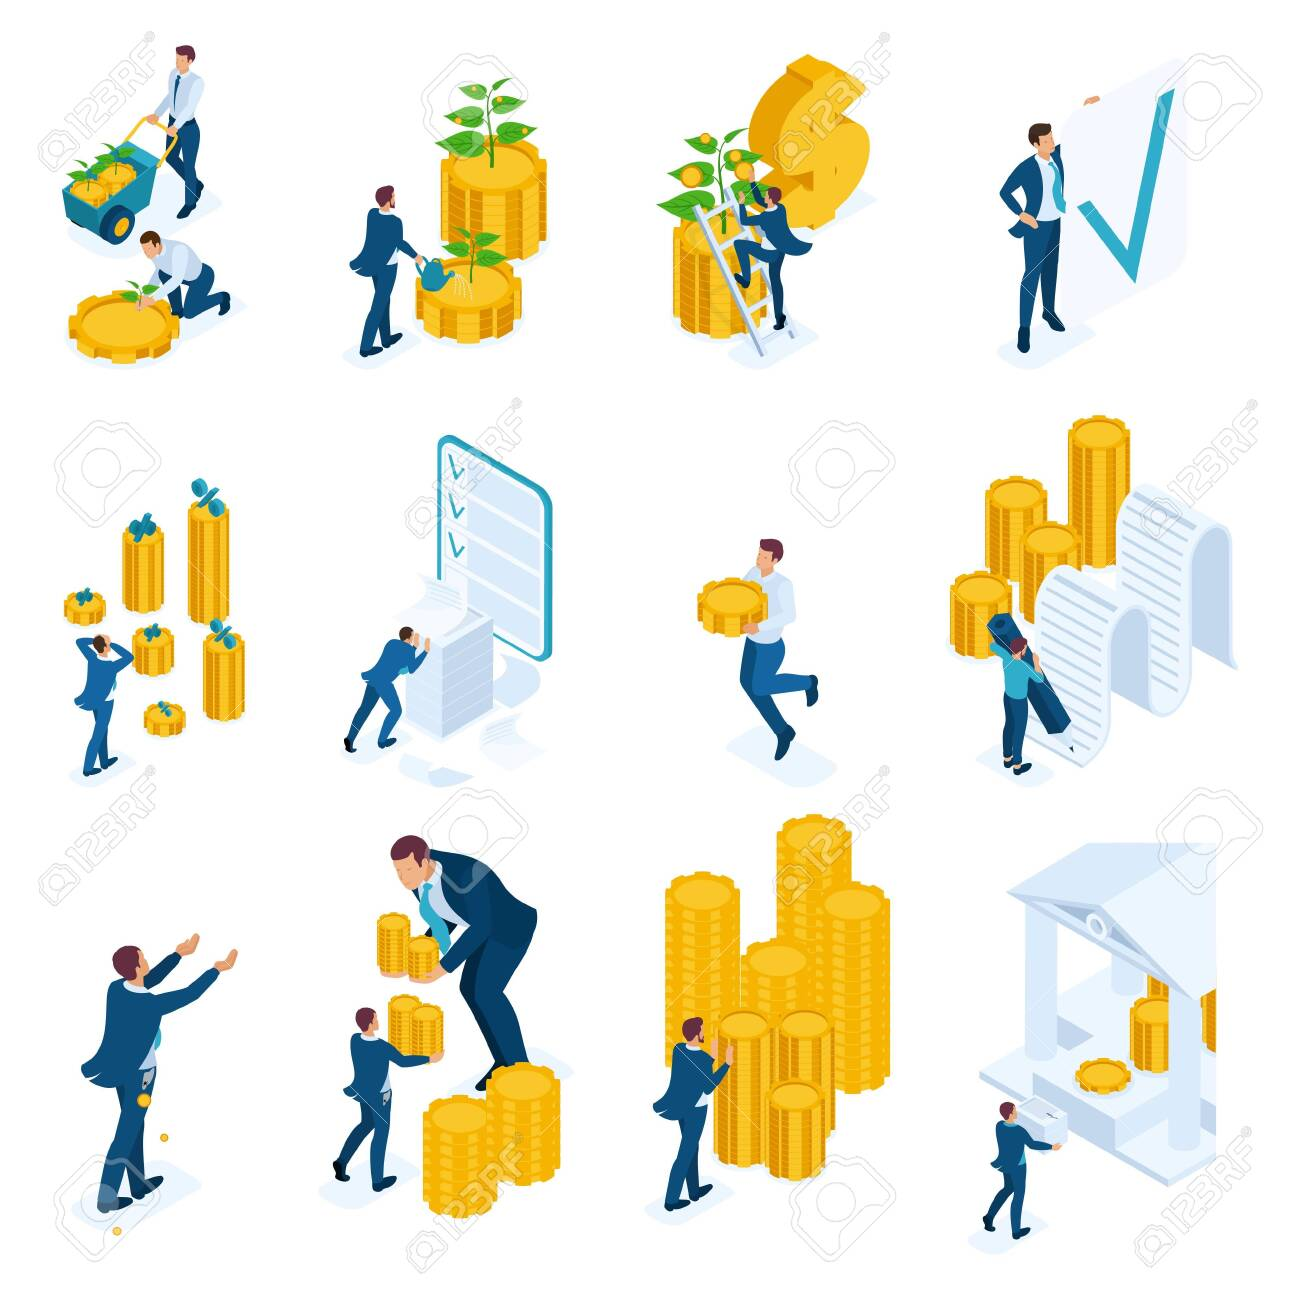 Isometric concepts of investment, Bank loans, mortgage. For website and mobile application design. - 125911850